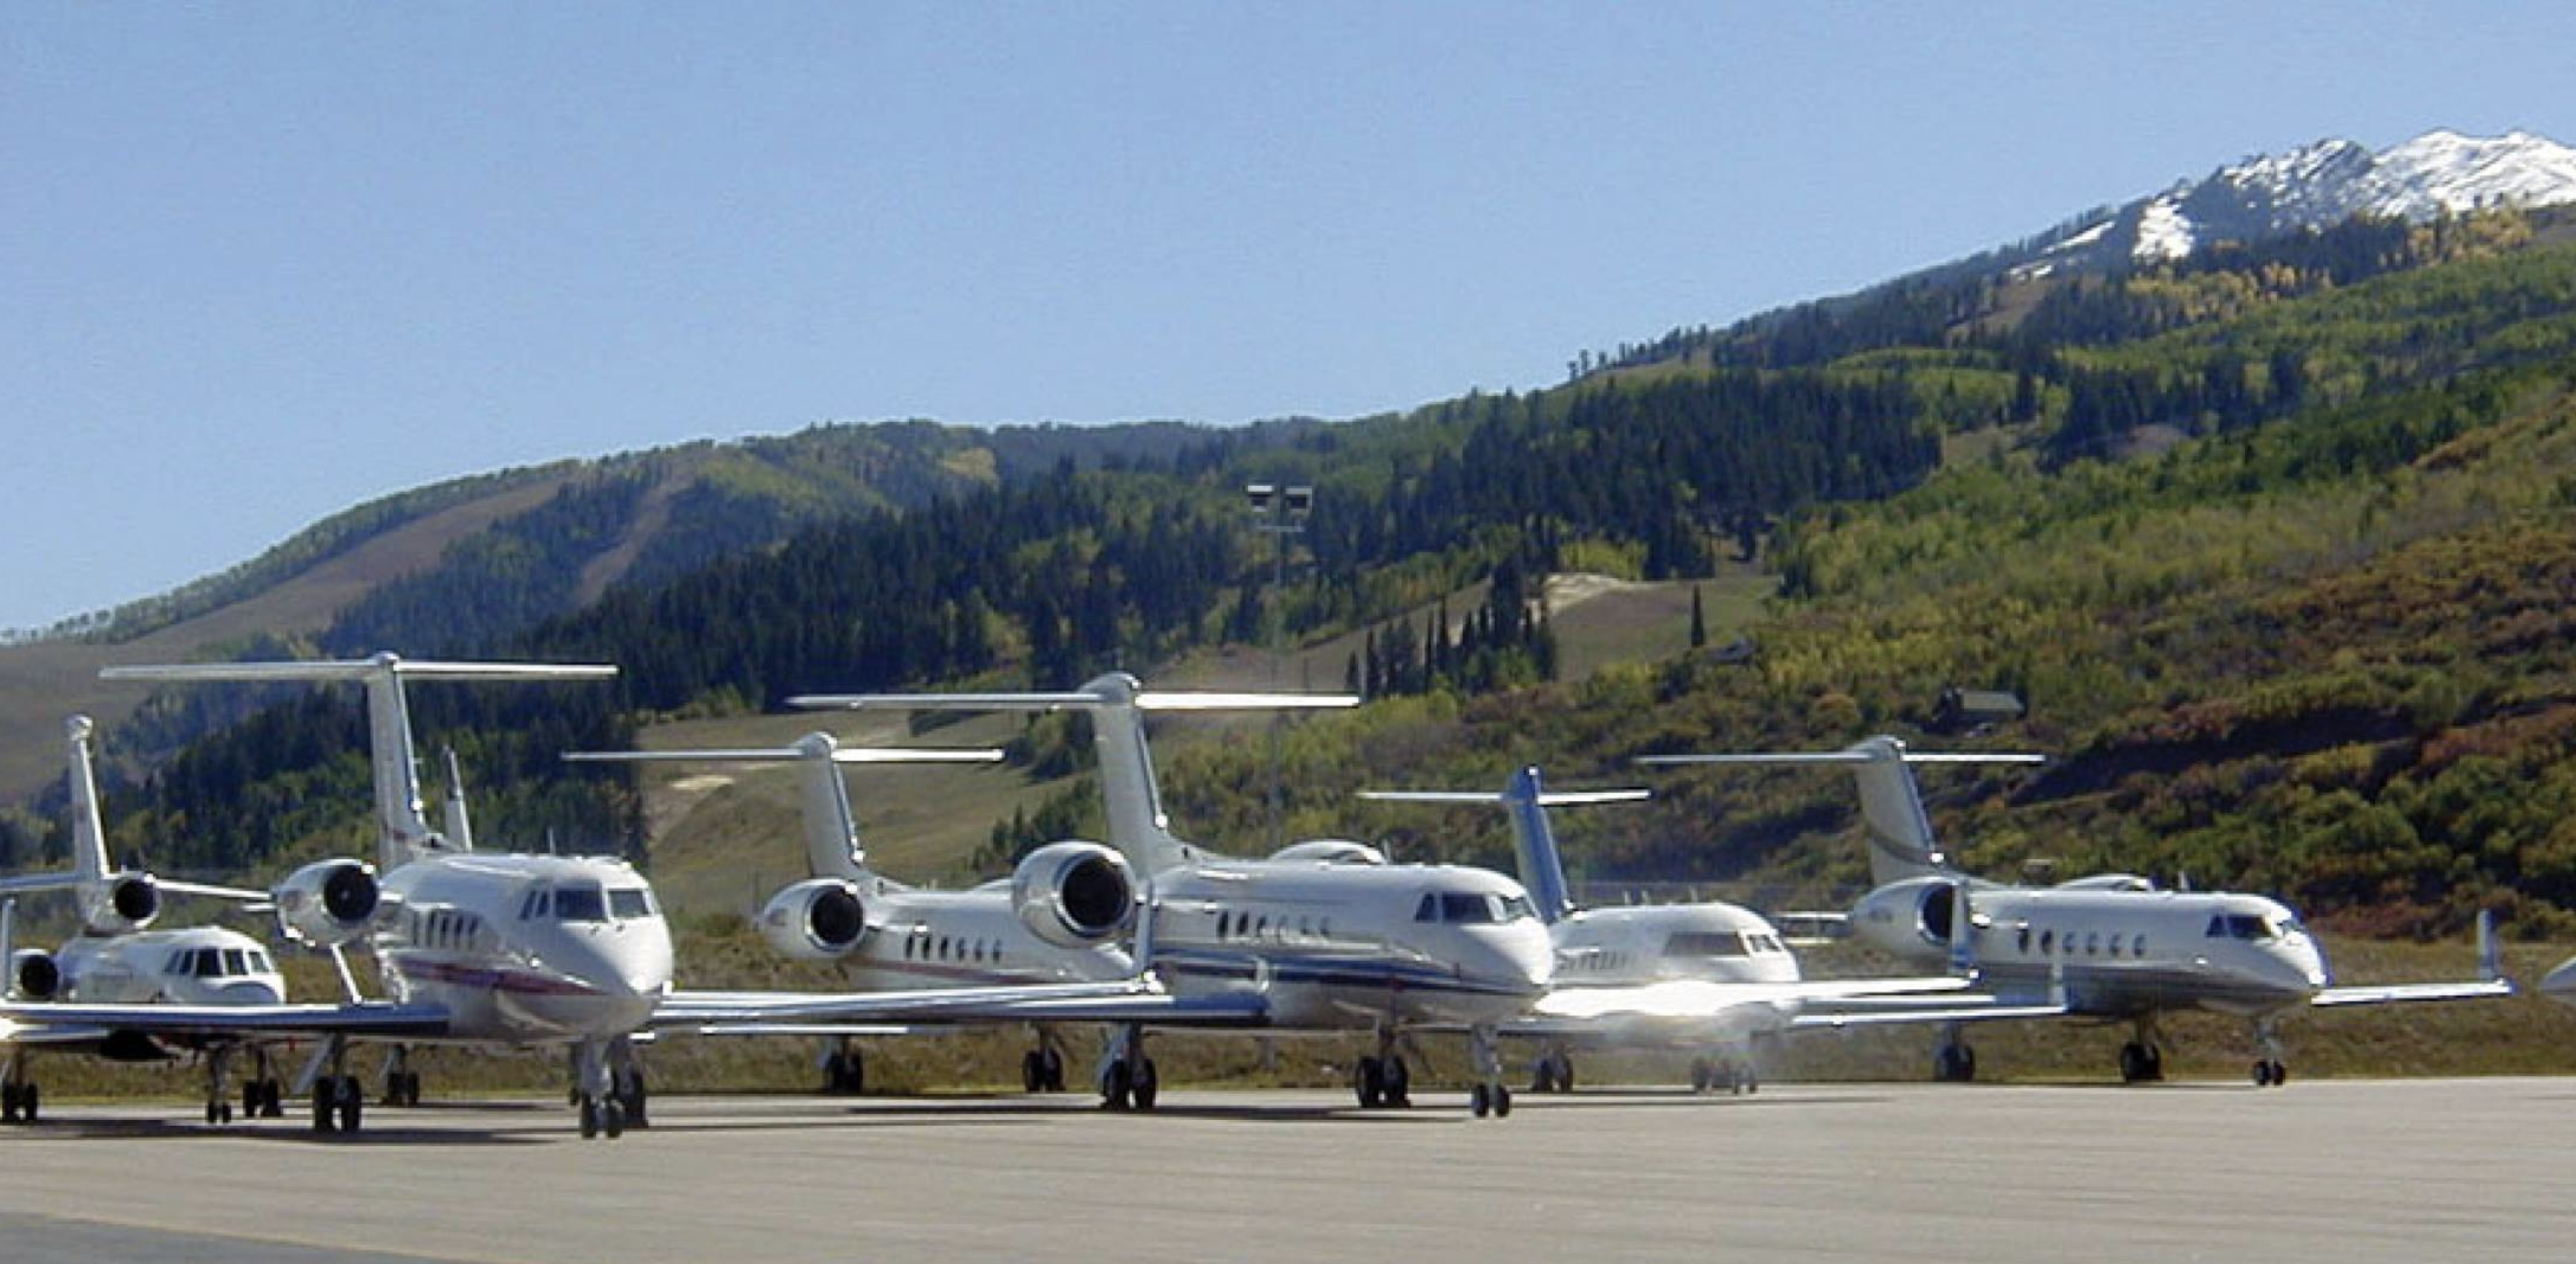 Aspen – Pitkin County Airport